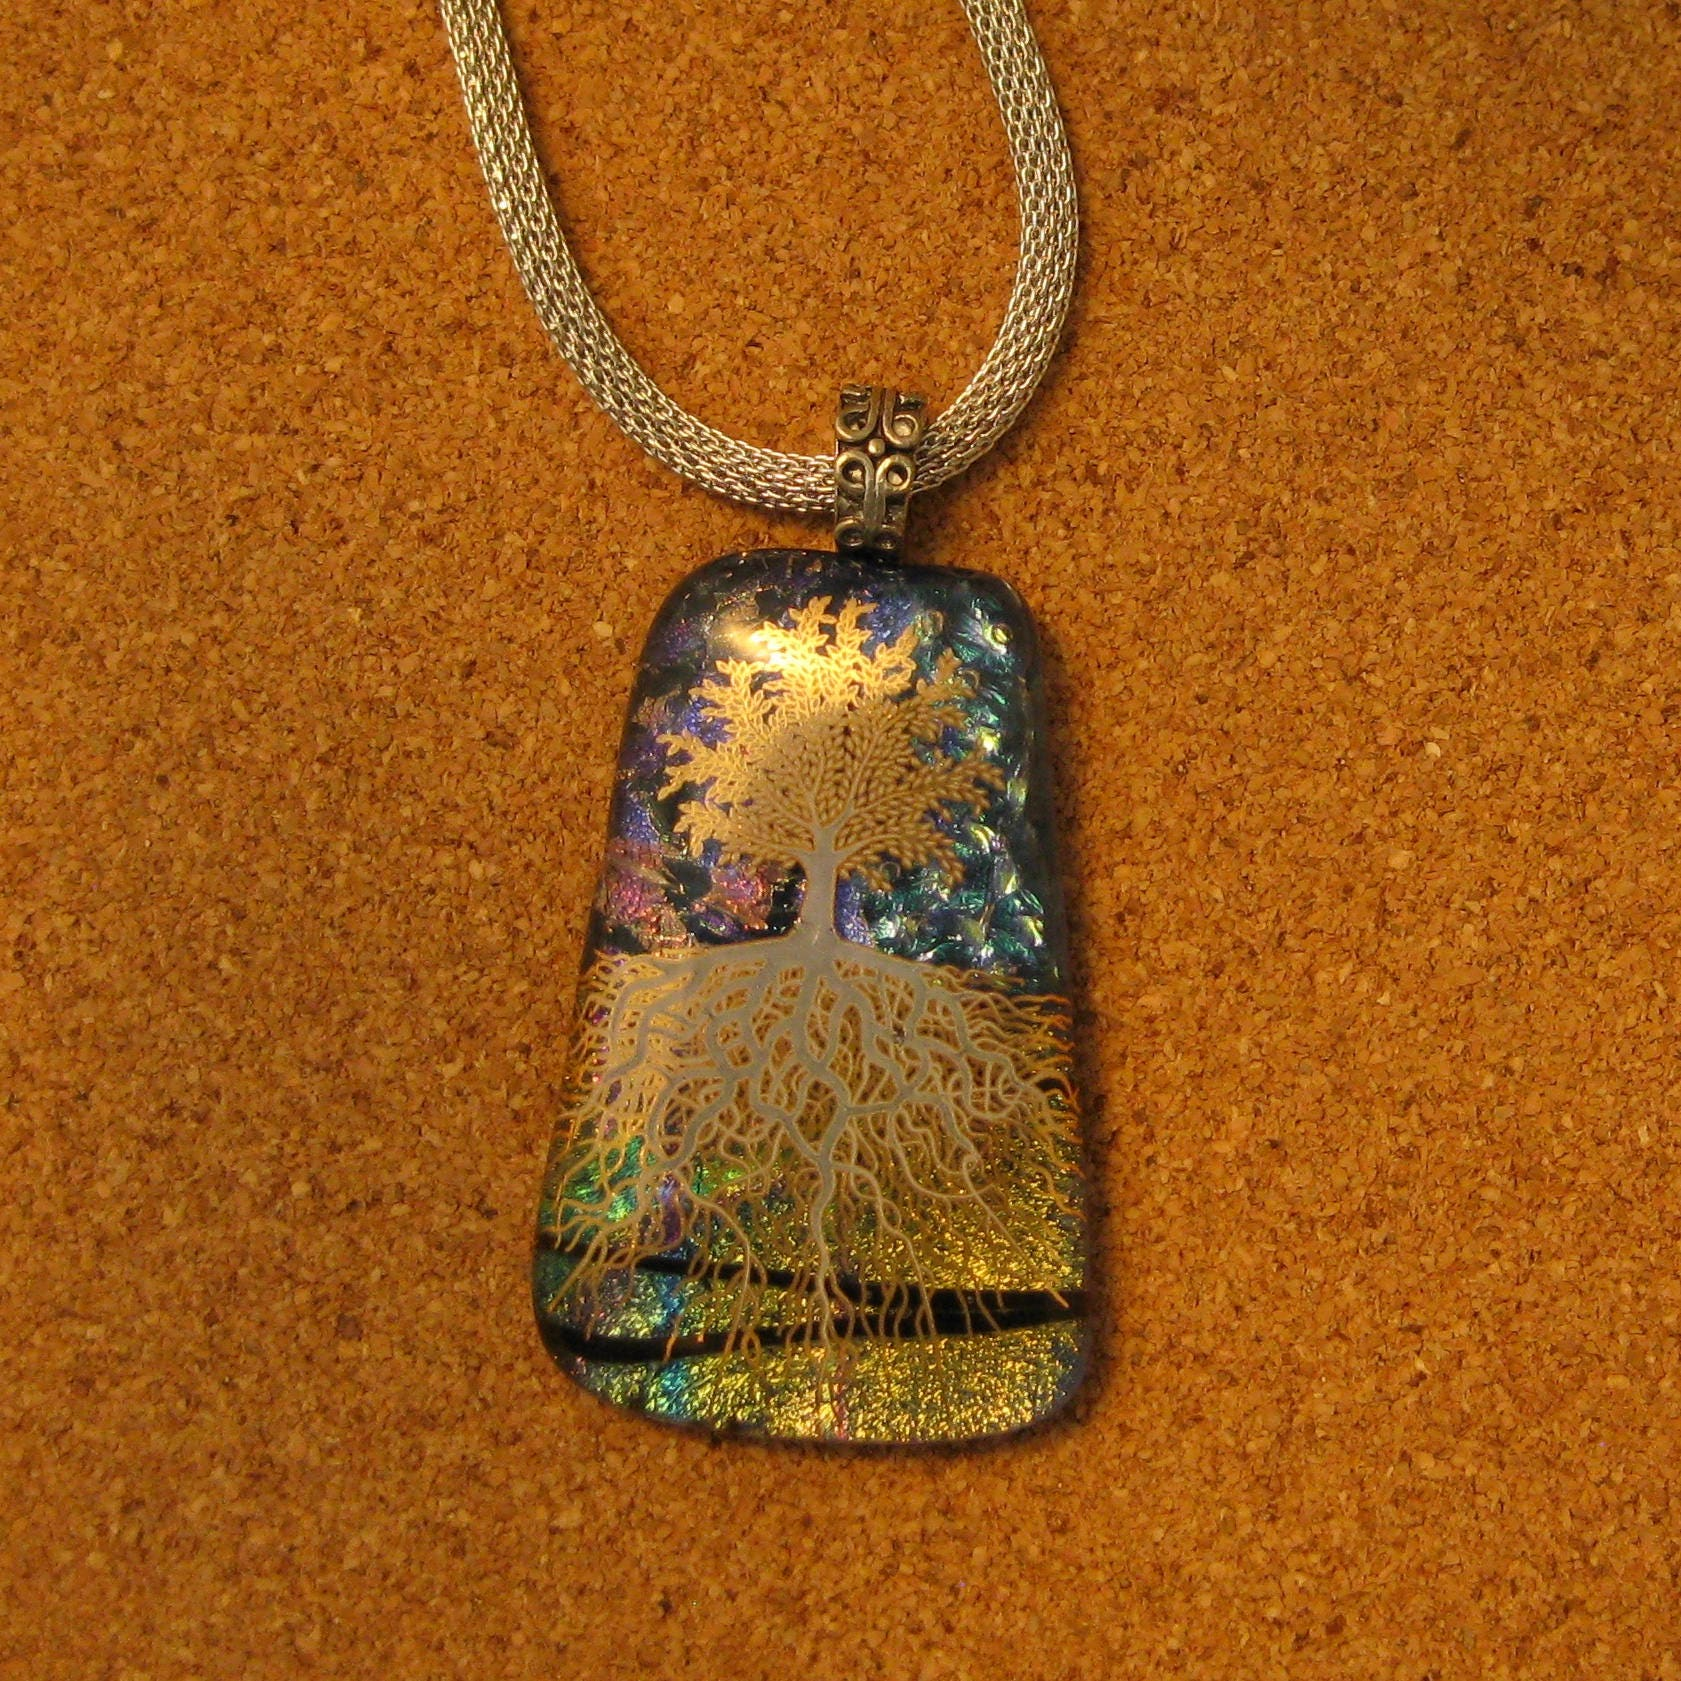 dichroic glass mermaids necklace products img jewelry pendant with jewel fused